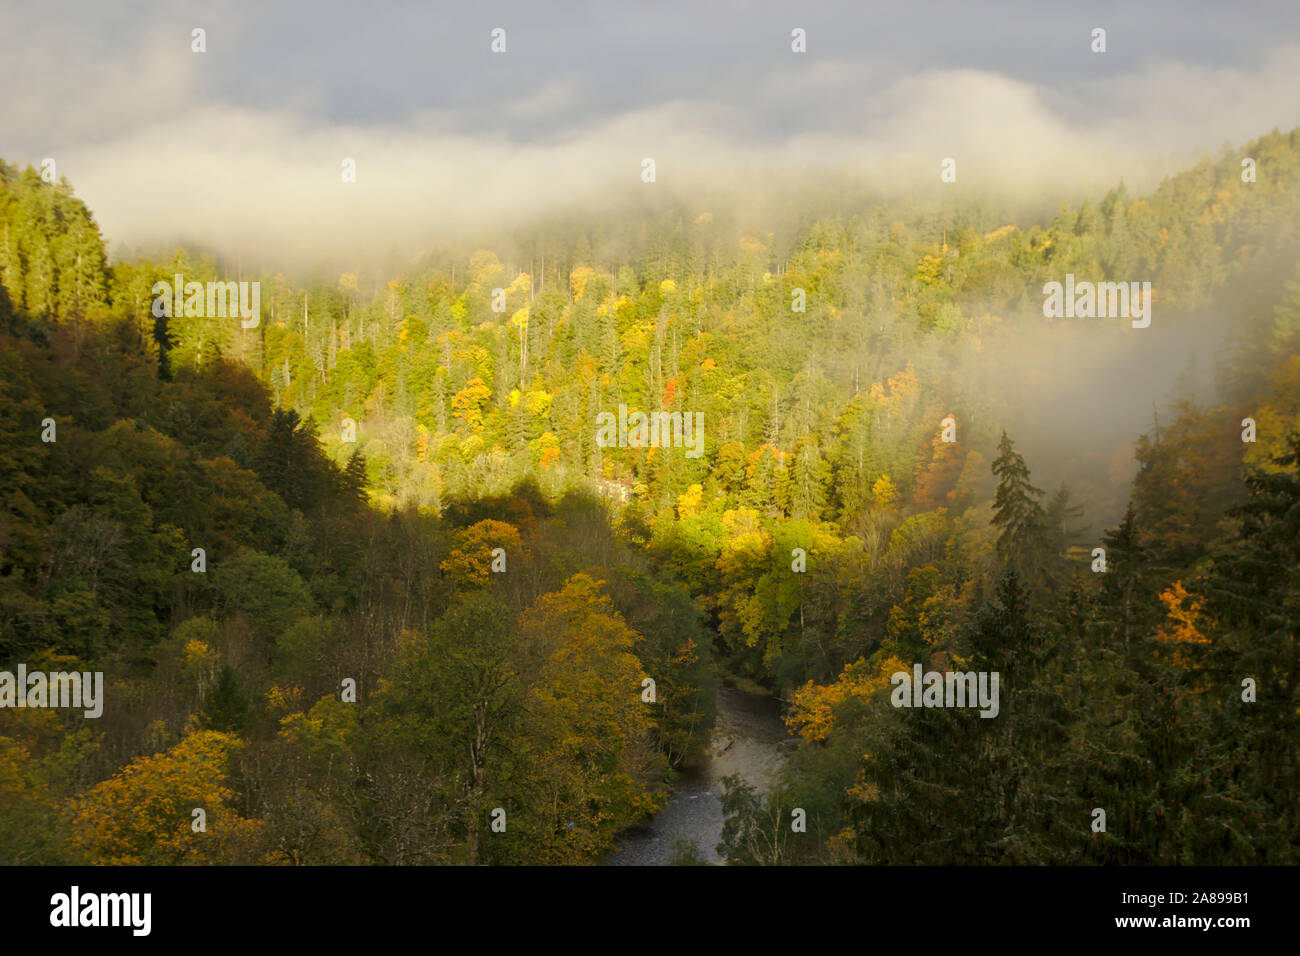 View into Wutachschlucht (Wutach canyon),  autumn, Black Forest, Germany Stock Photo